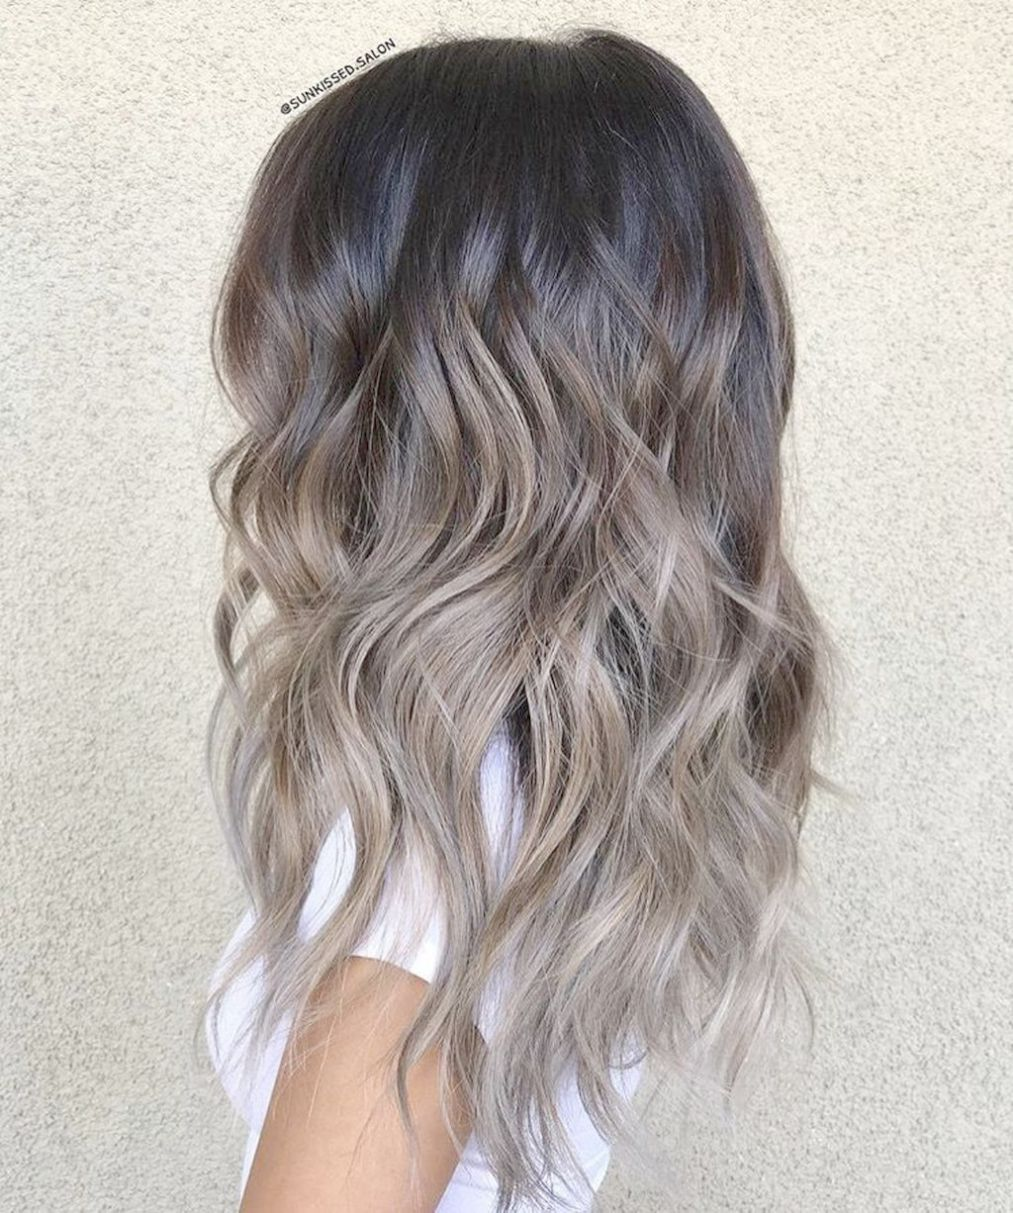 Cool Hair Color Ideas For Brunettes Hair Salon Near Me Riverside Ombre Hair Blonde Fall Hair Color For Brunettes Balayage Hair